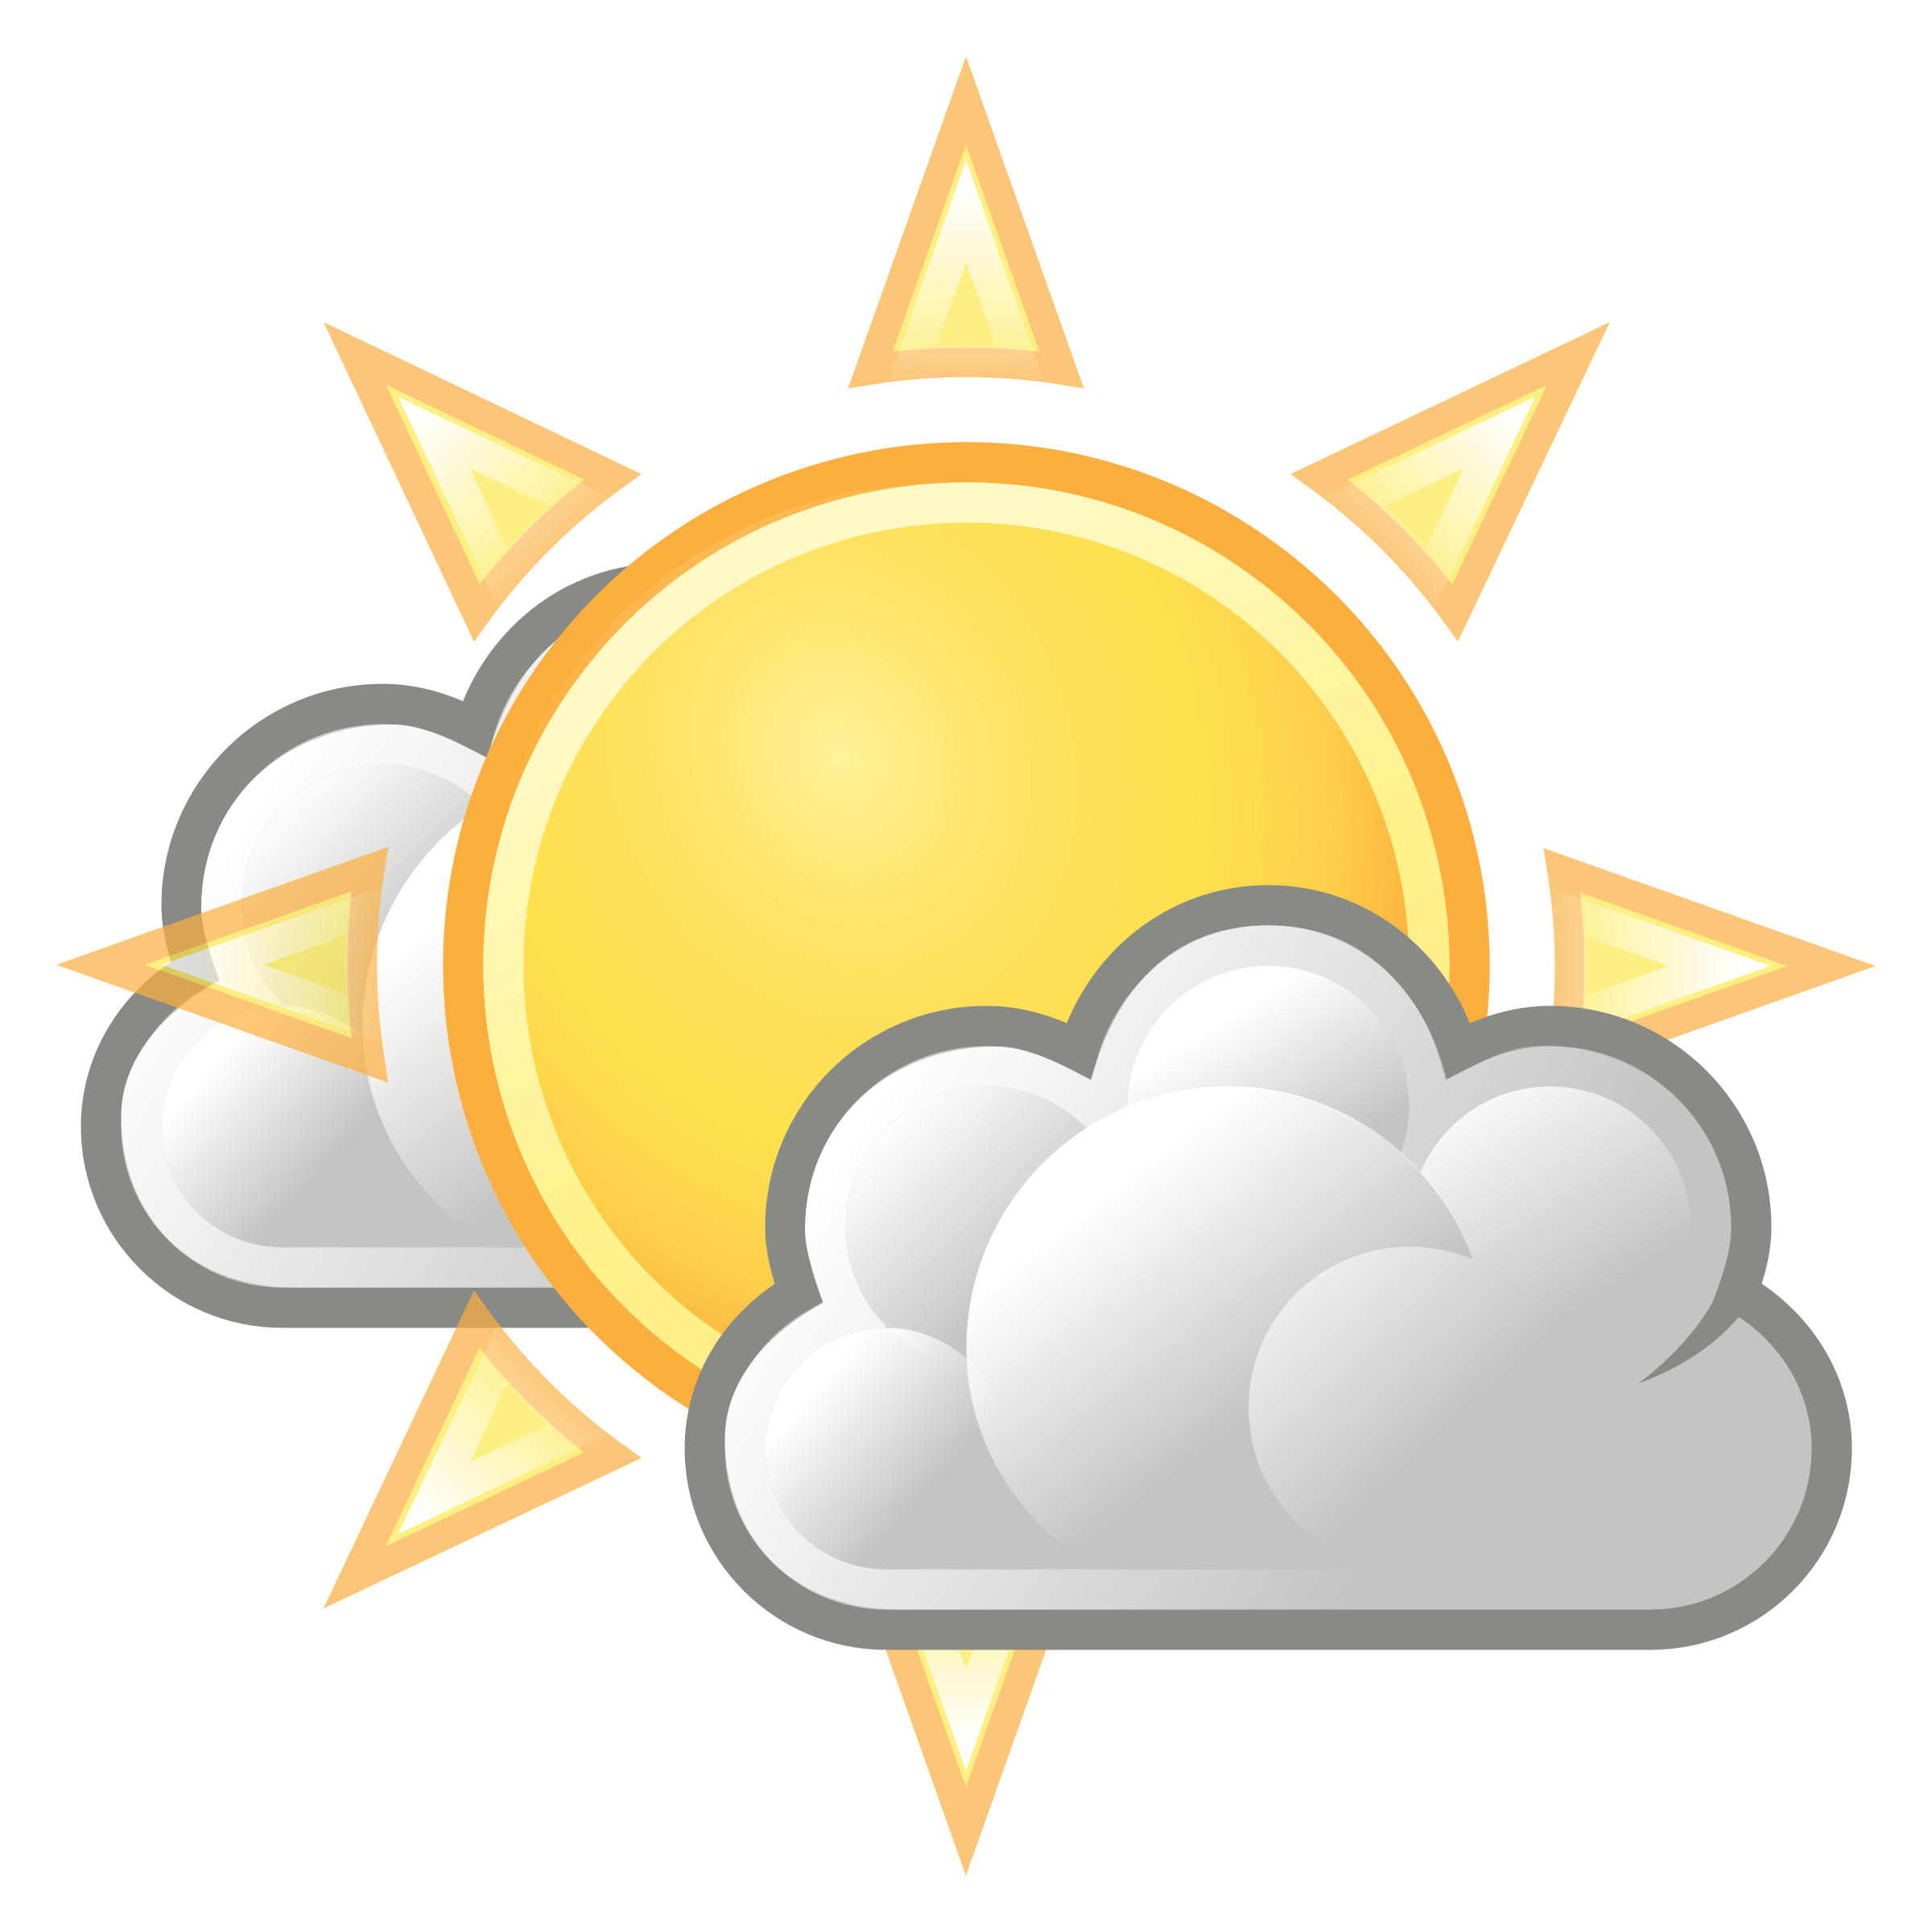 Sun clipart weather svg library stock Clipart - tango weather few clouds svg library stock